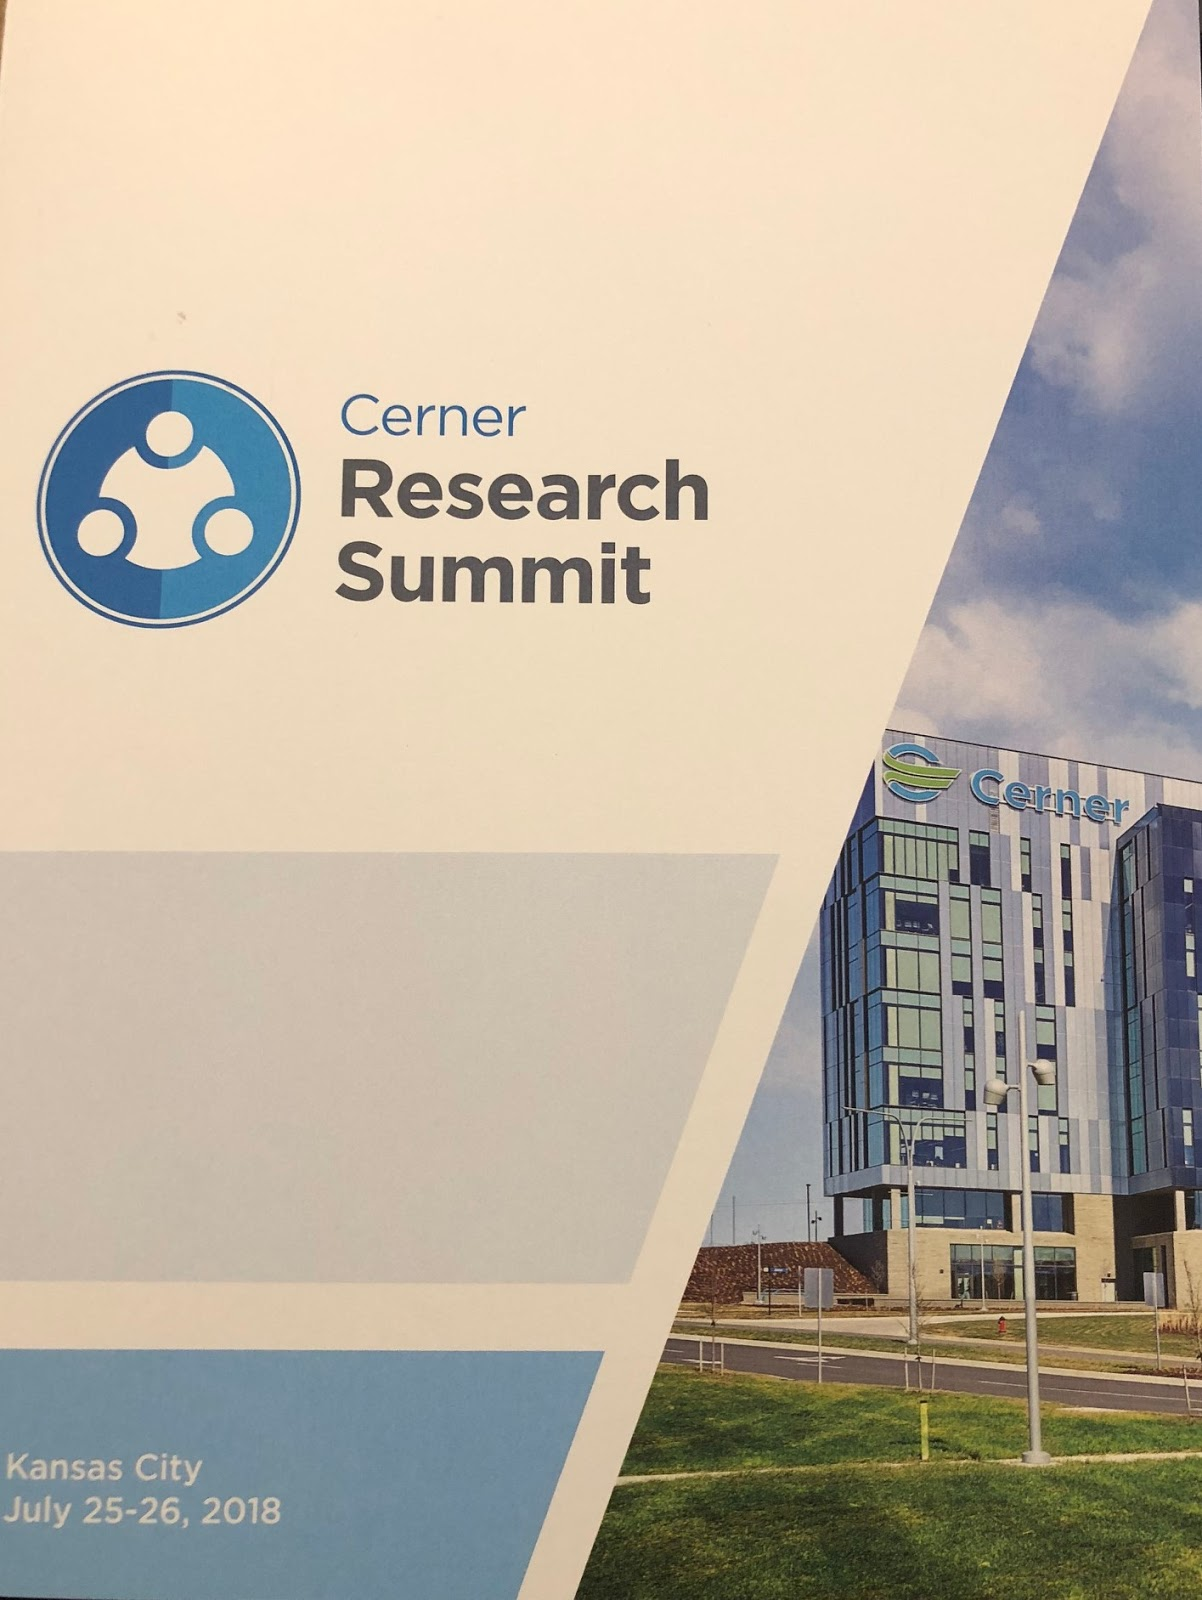 Notes from Neil: Cerner Research Summit